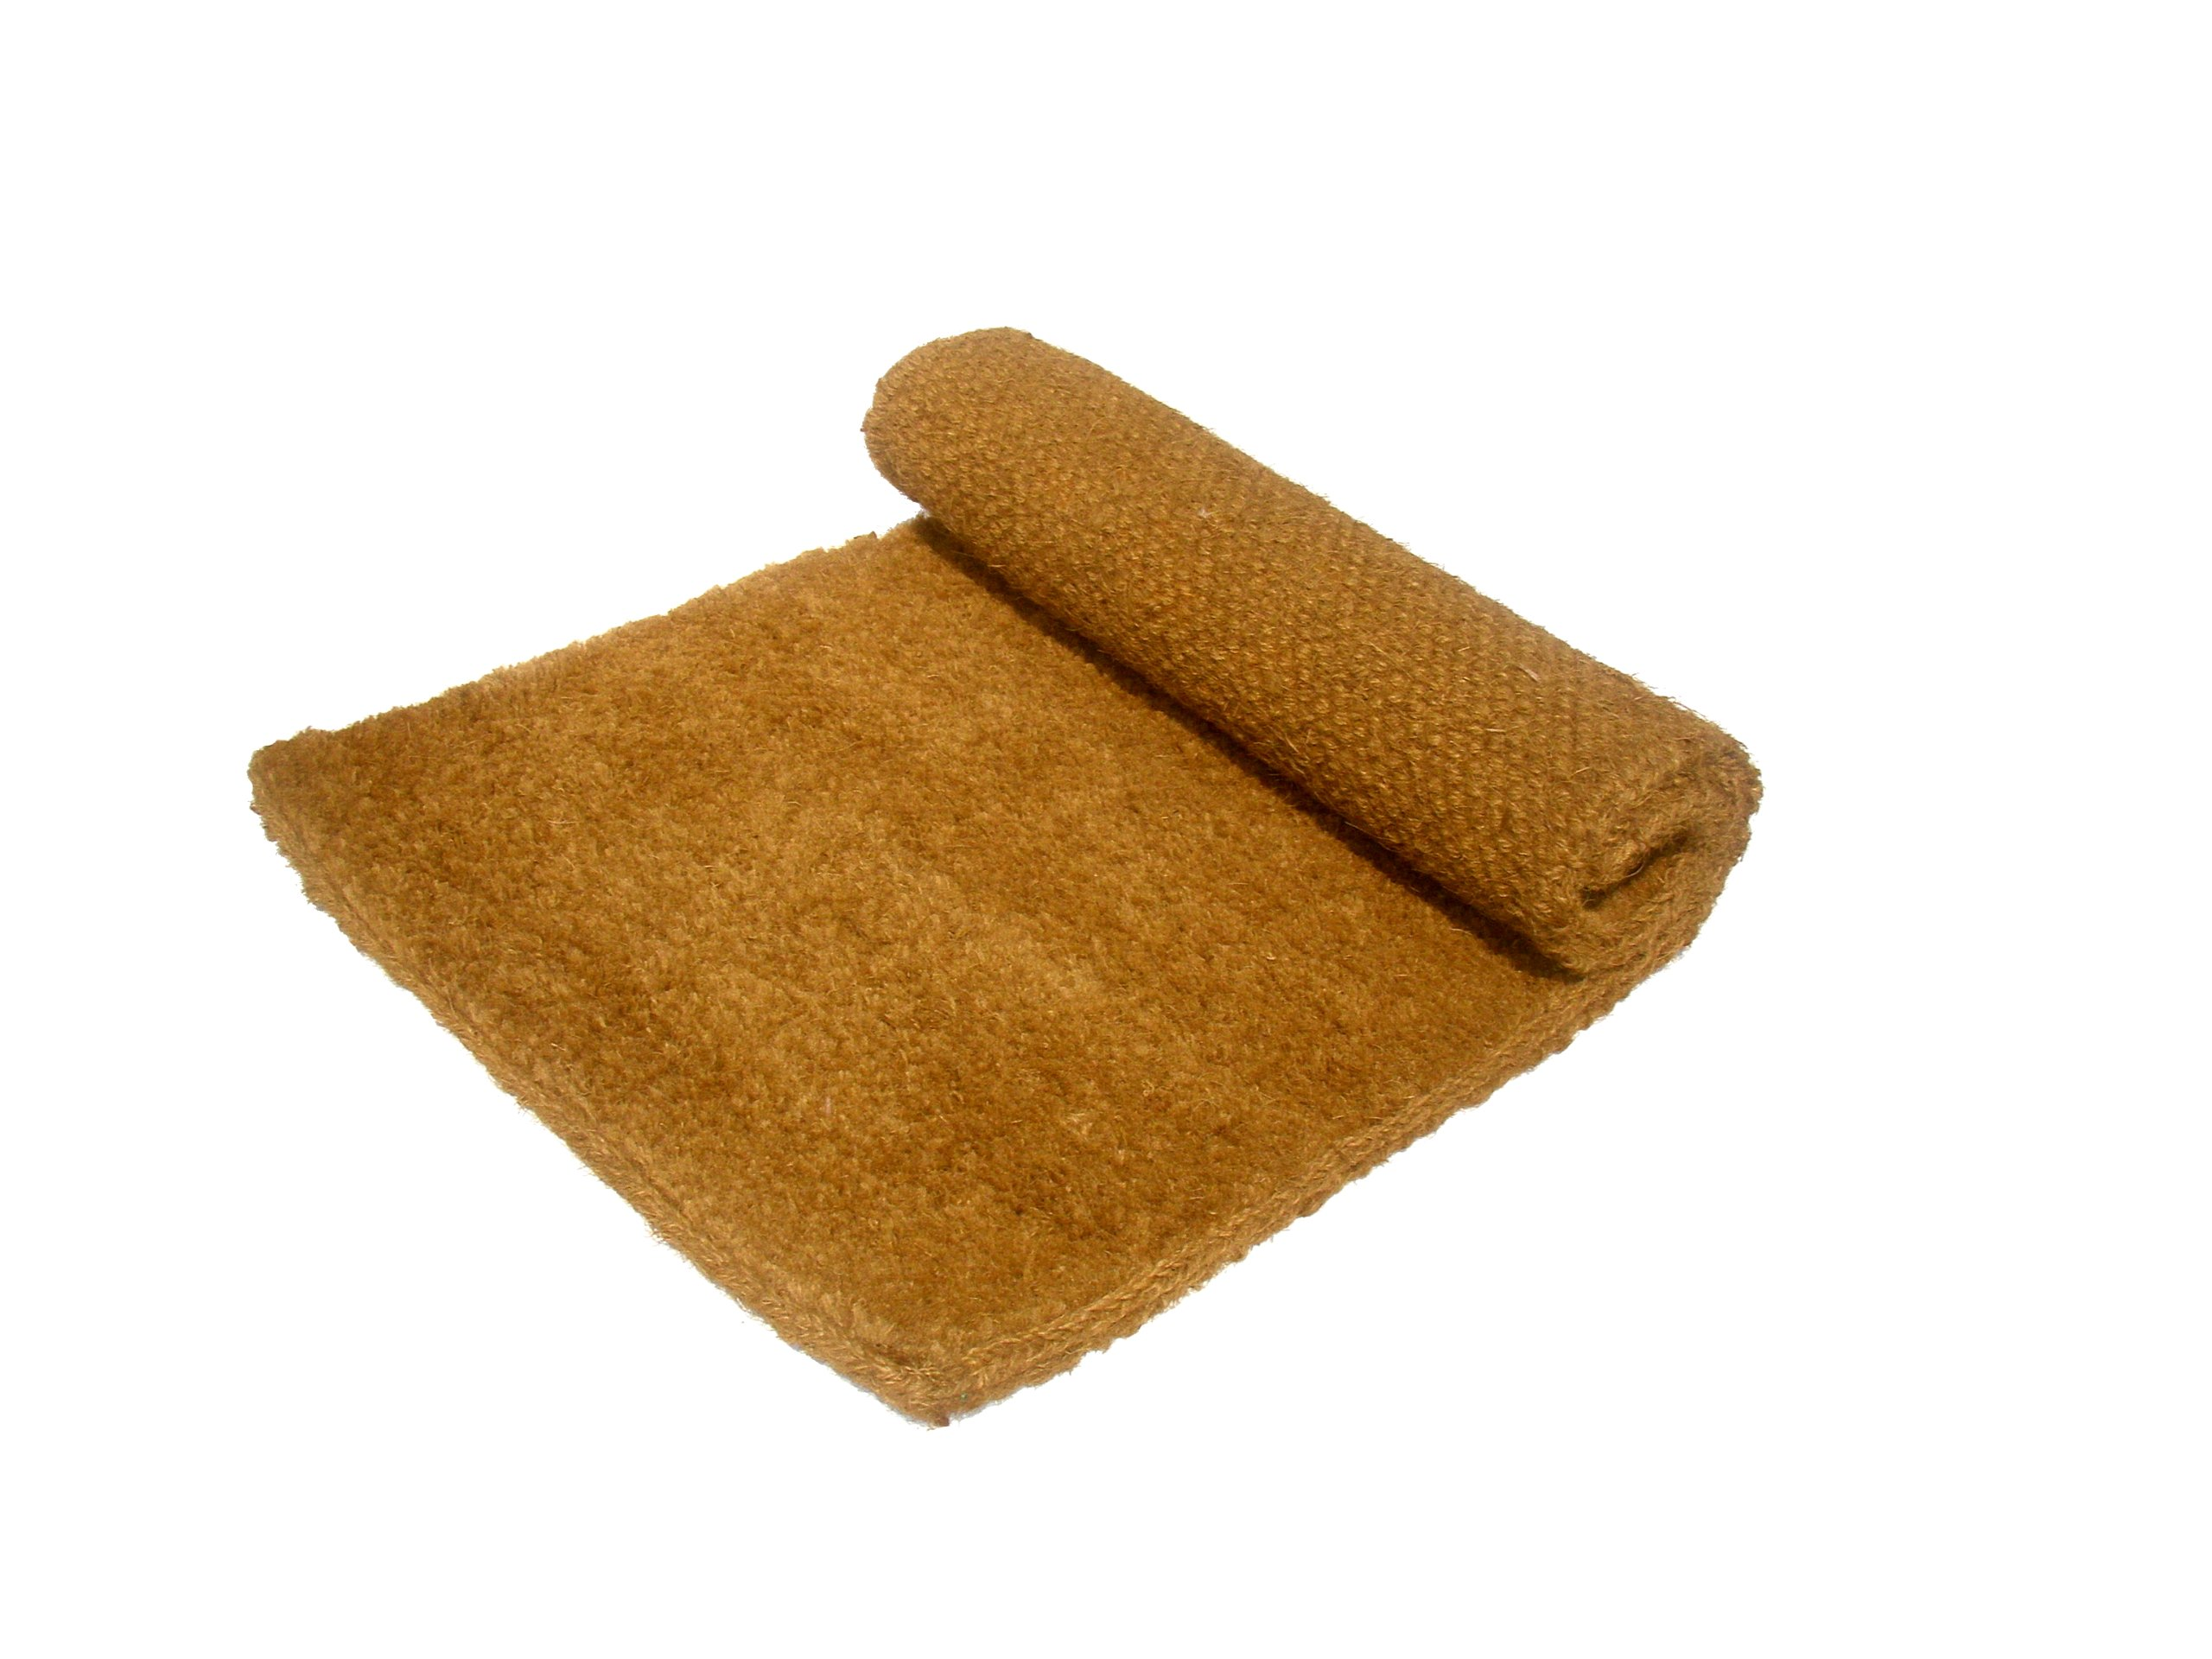 Imports Decor Coir Doormat, Plain Coco, 36-Inch by 60-Inch